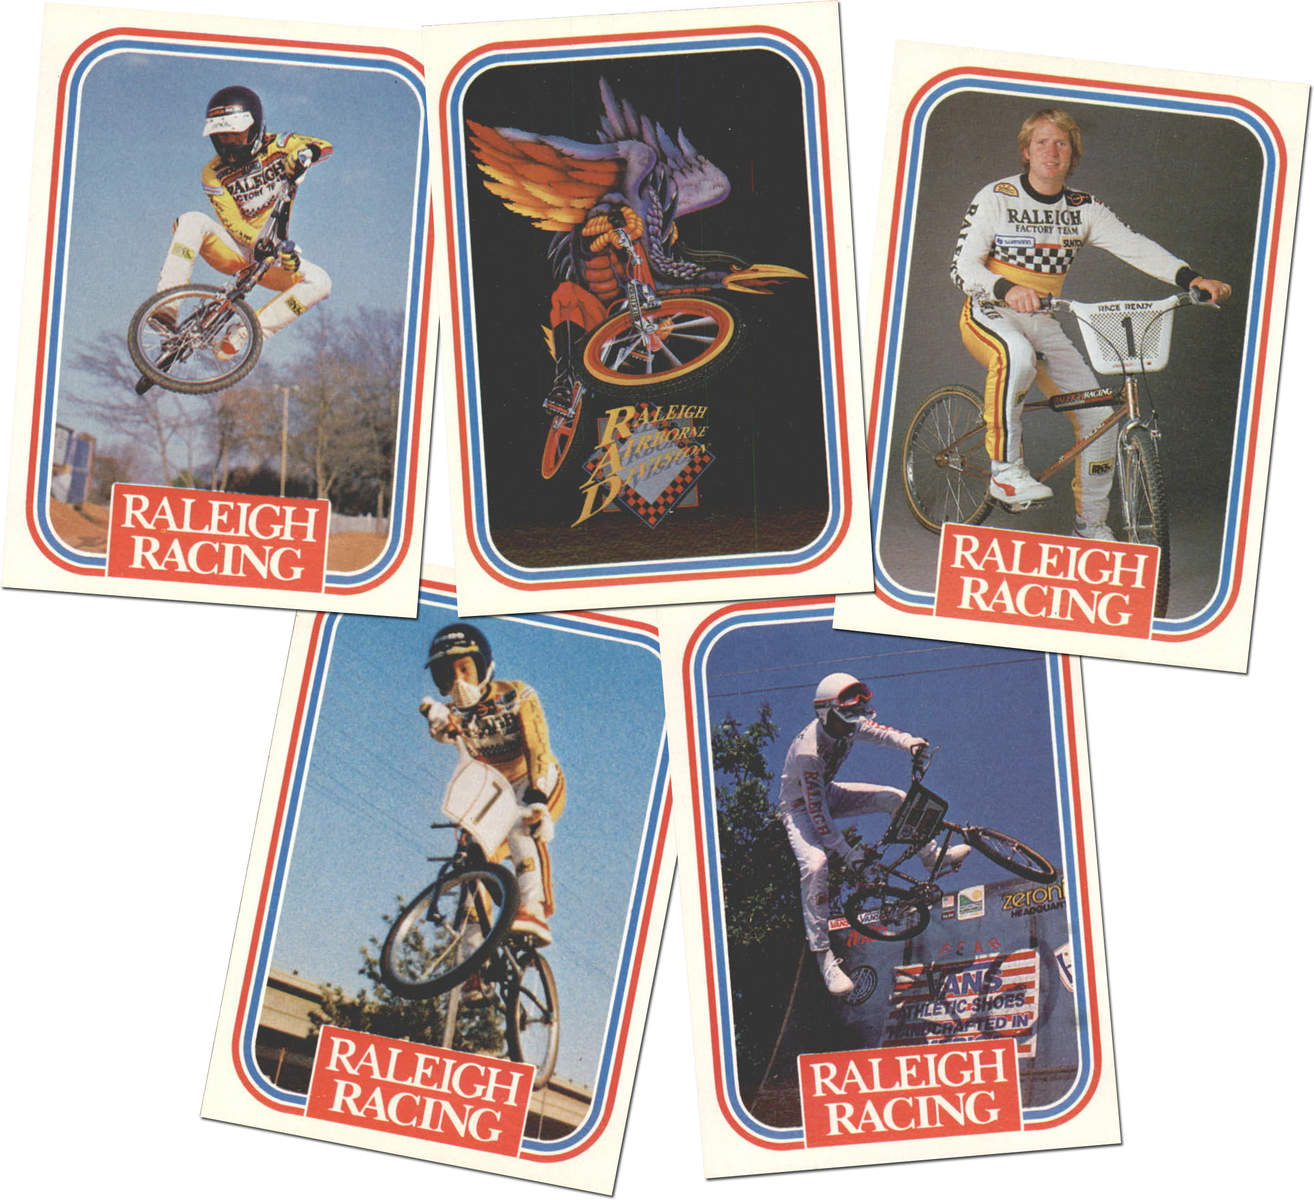 http://uploads.bmxmuseum.com/user-images/152/raleight5a0dc942c4.jpg